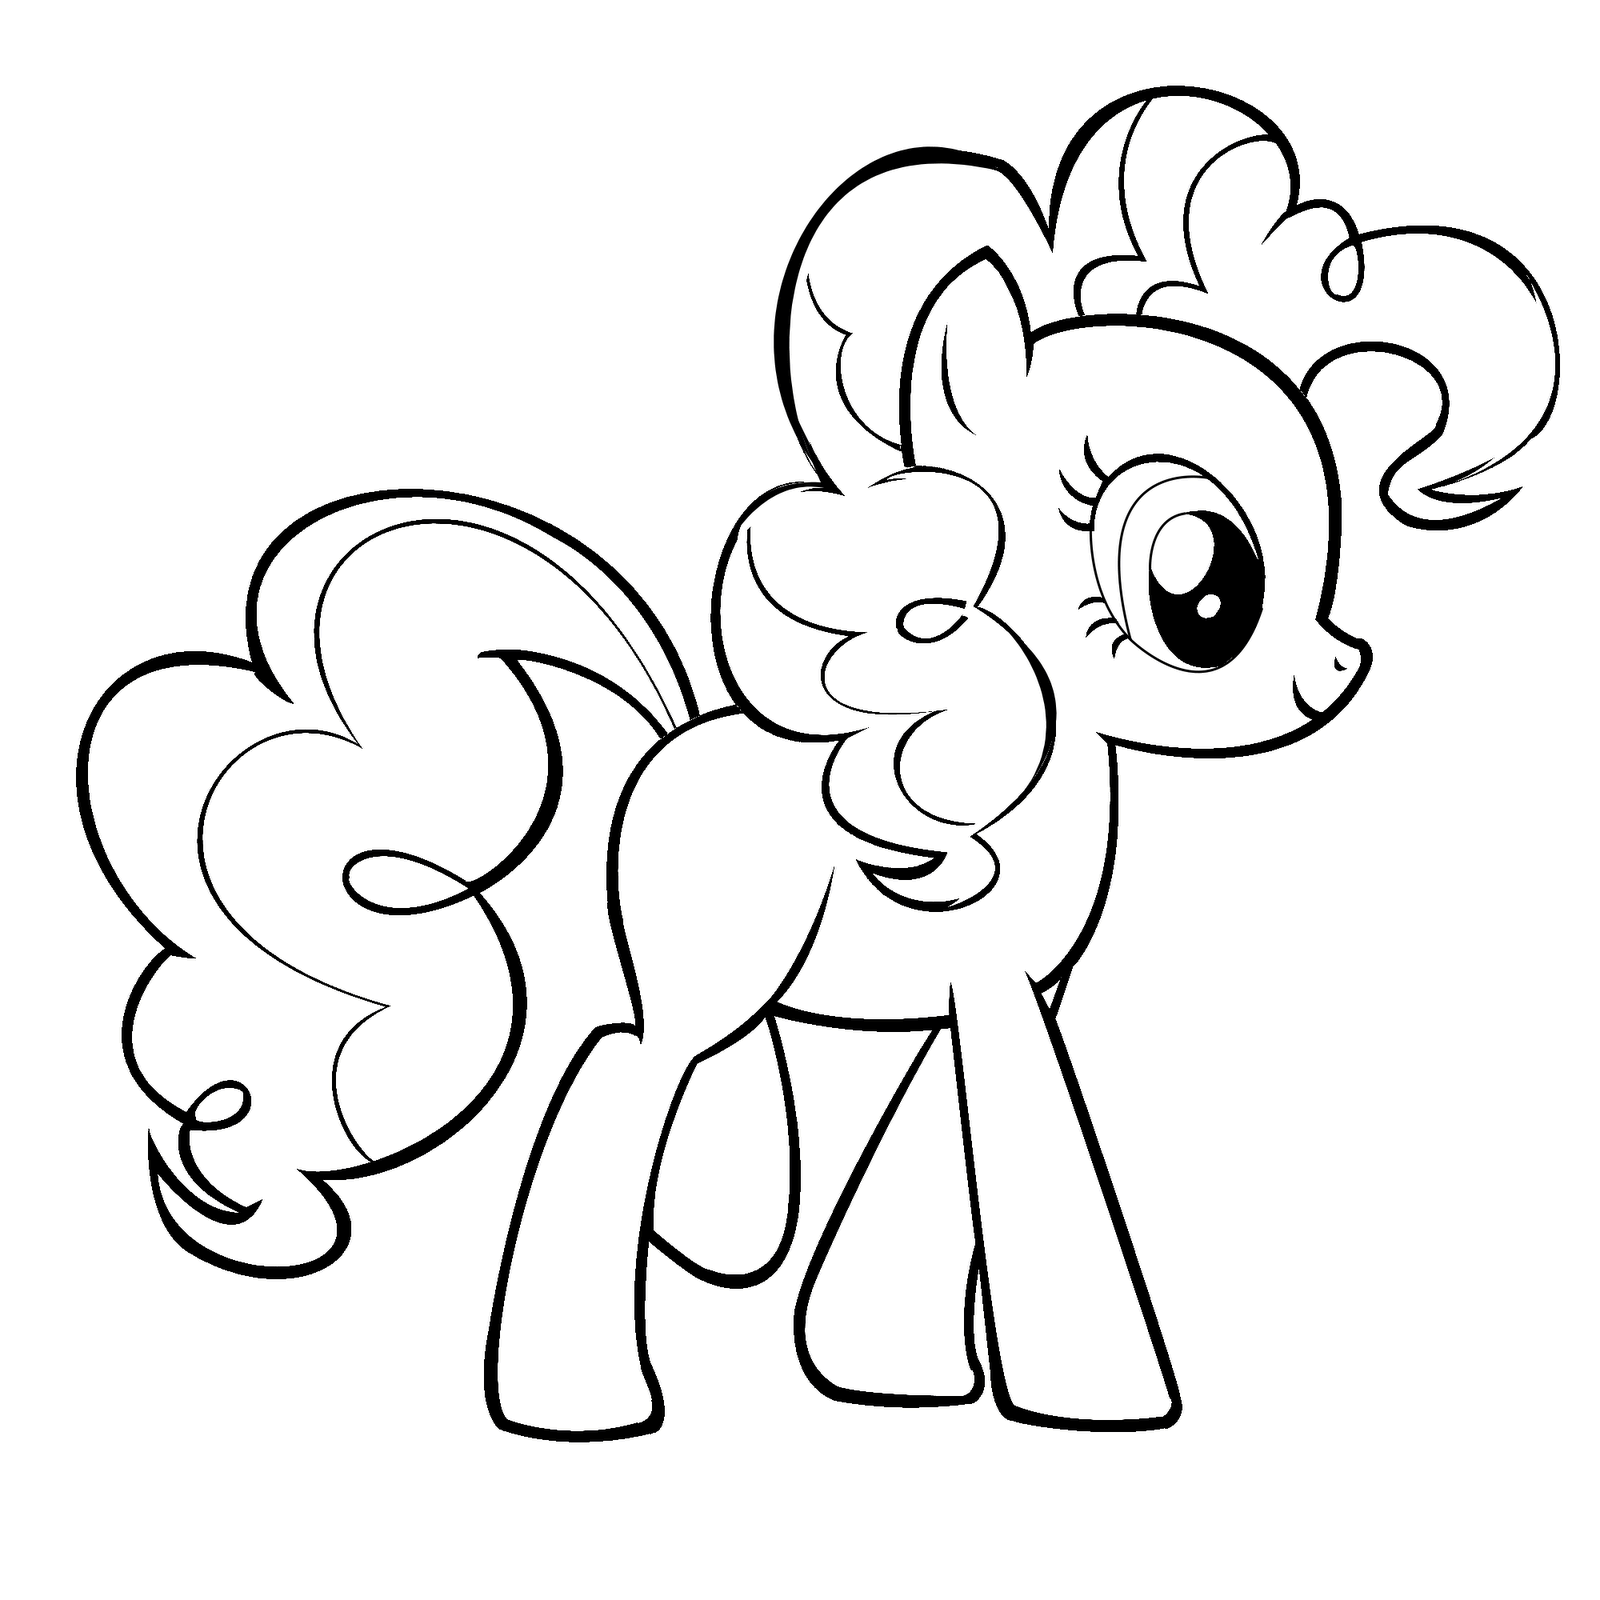 New Cute My Little Pony Coloring Pages | New Coloring Pages